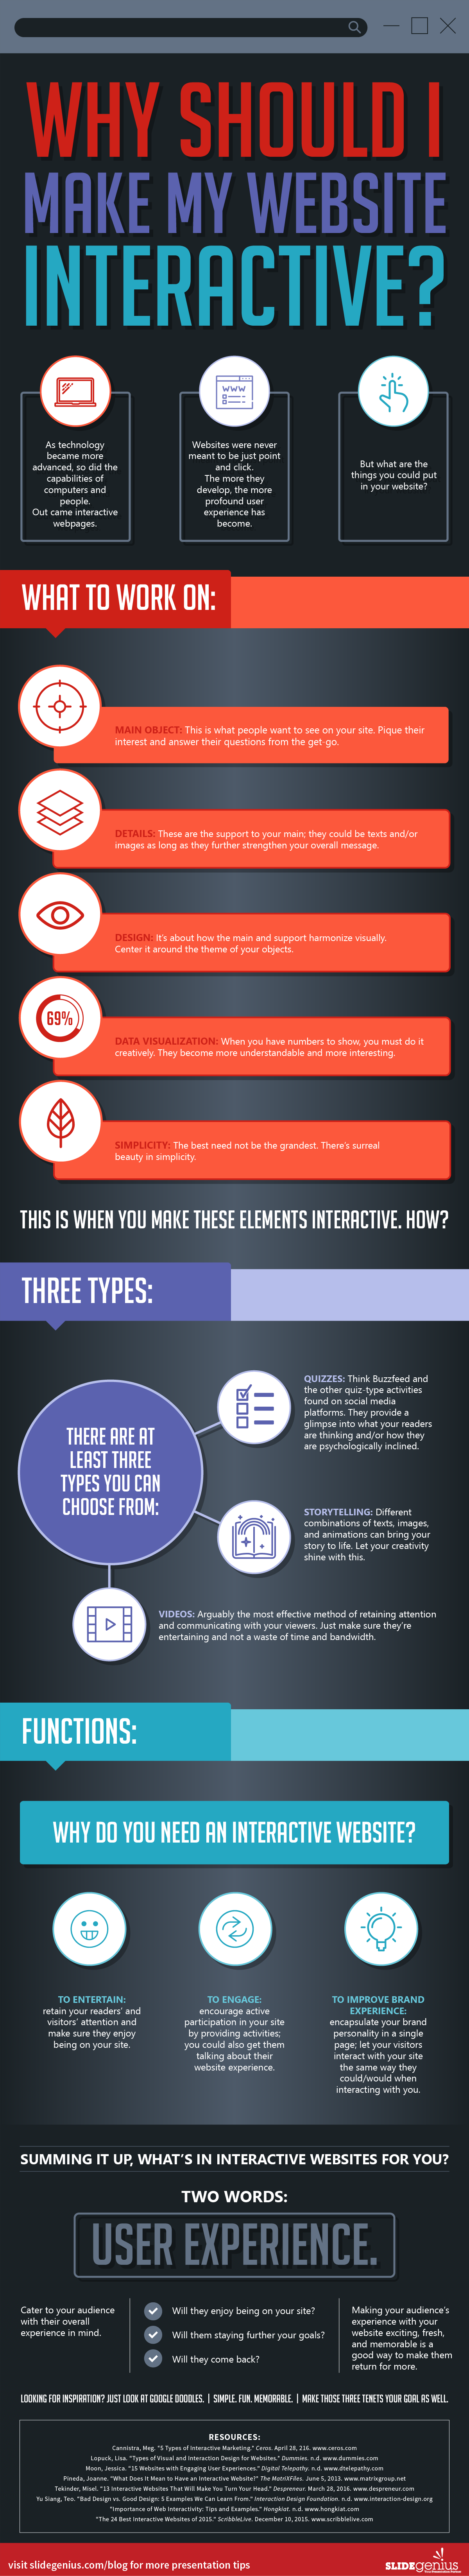 Why Should I Make My Website Interactive? #Infographic